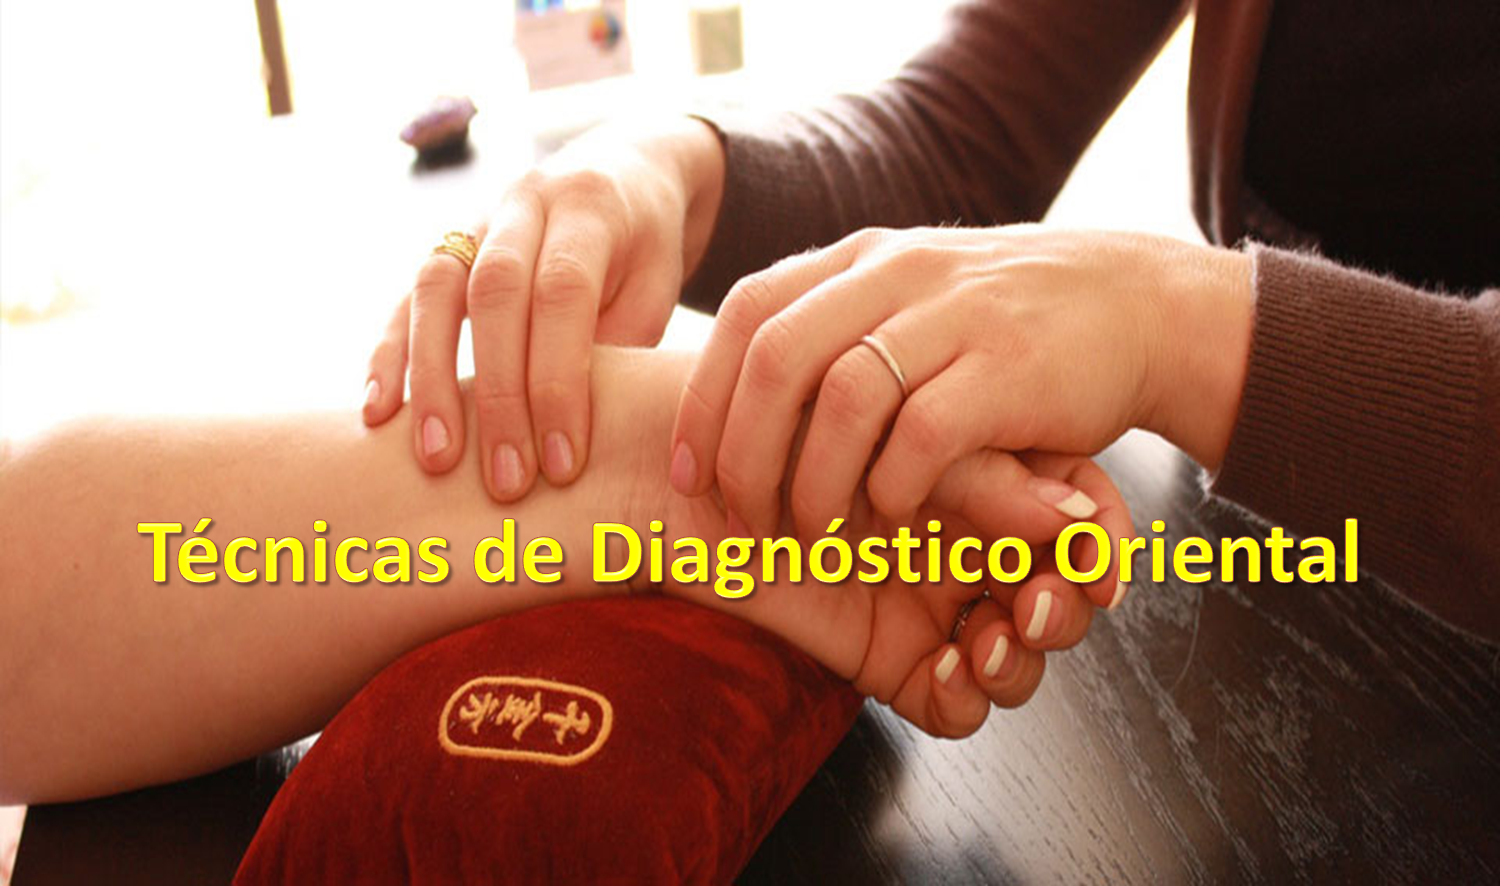 Técnicas de diagnostico